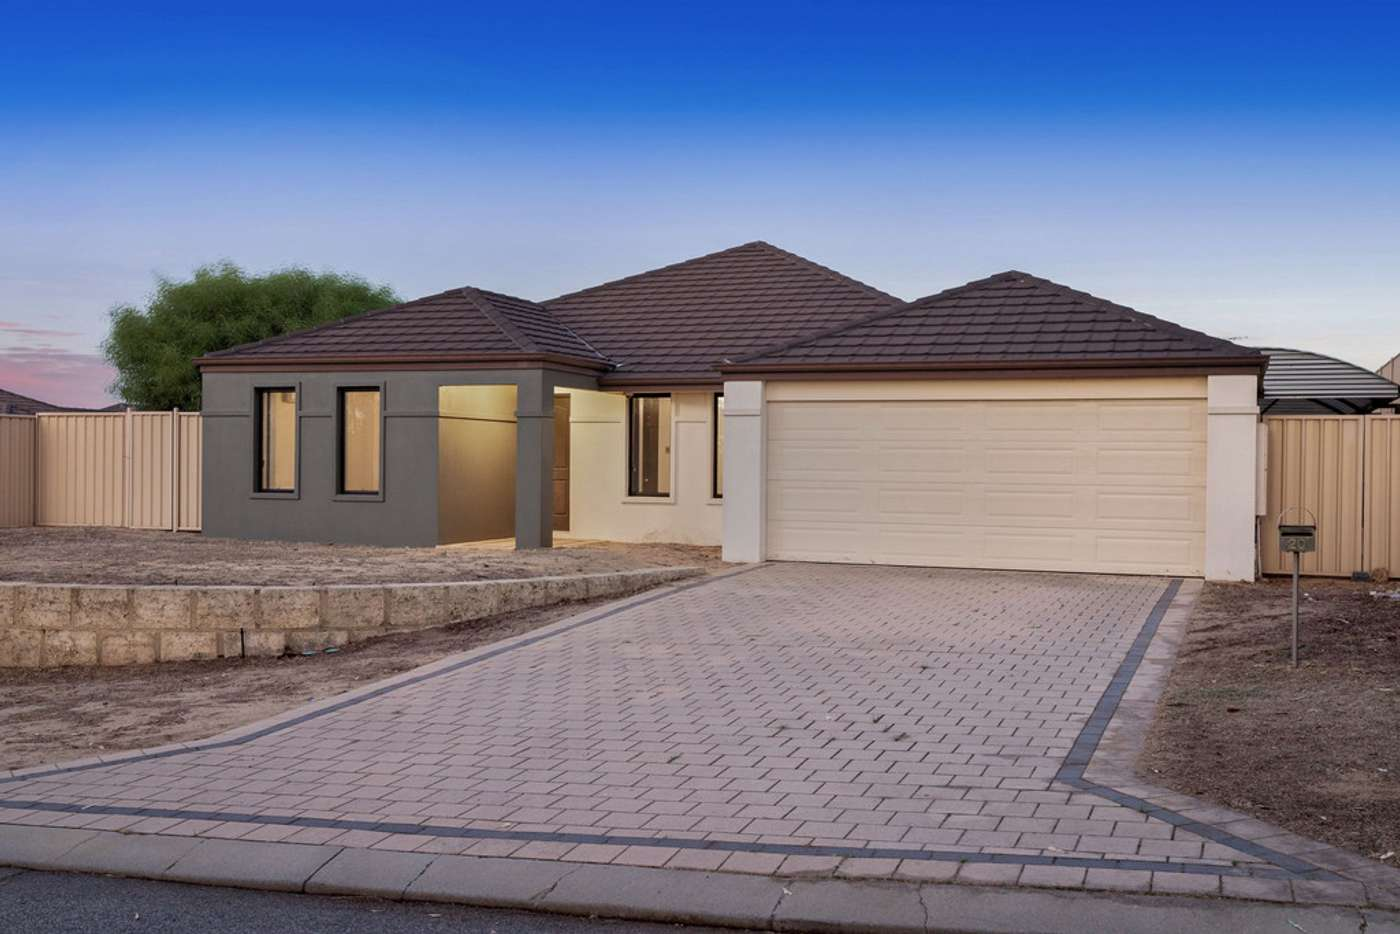 Main view of Homely house listing, 20 Friarbird Terrace, Beeliar WA 6164